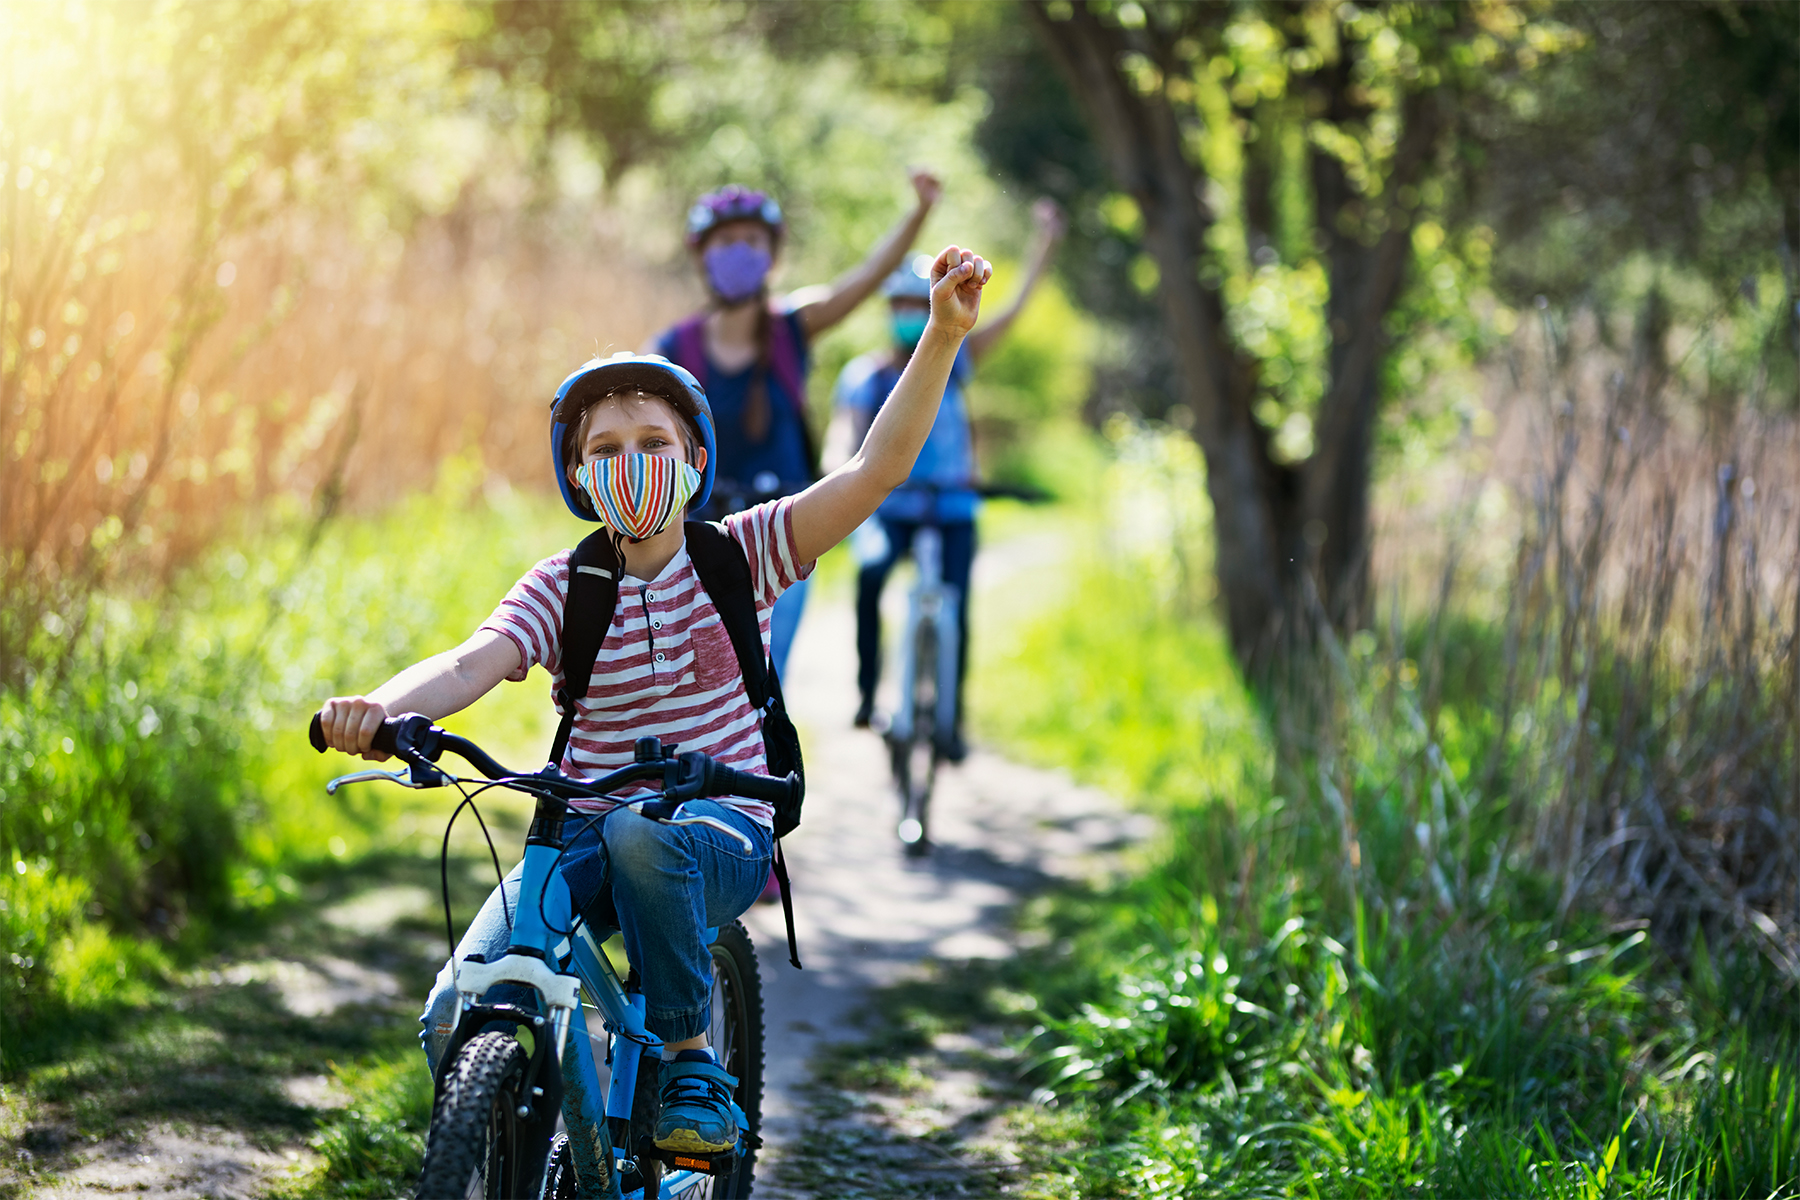 The 5-2-1-0 Rule for Keeping Children Healthy and Happy